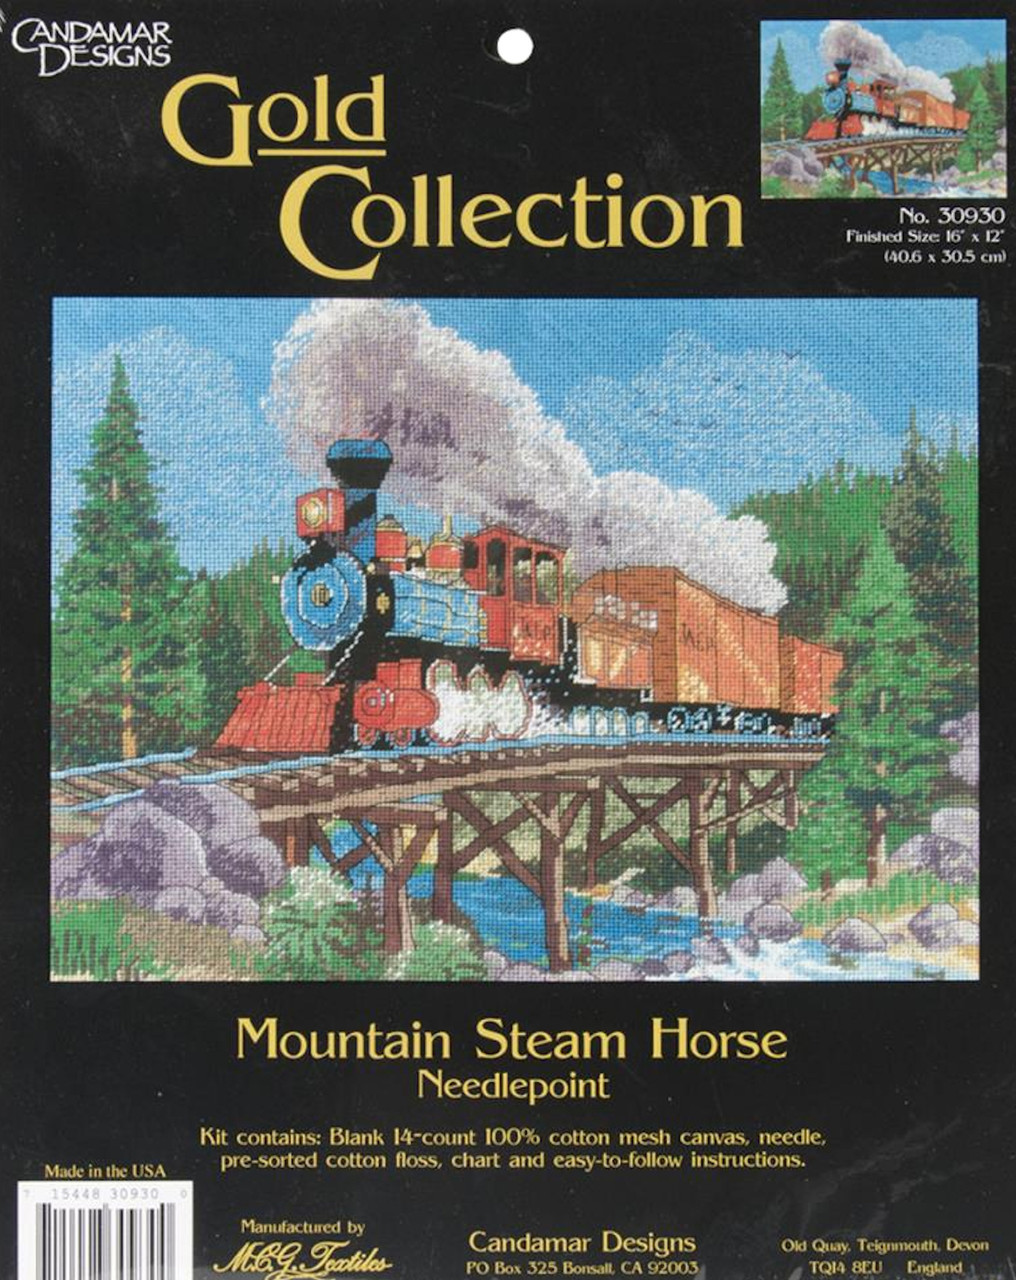 Gold Collection - Mountain Steam Horse